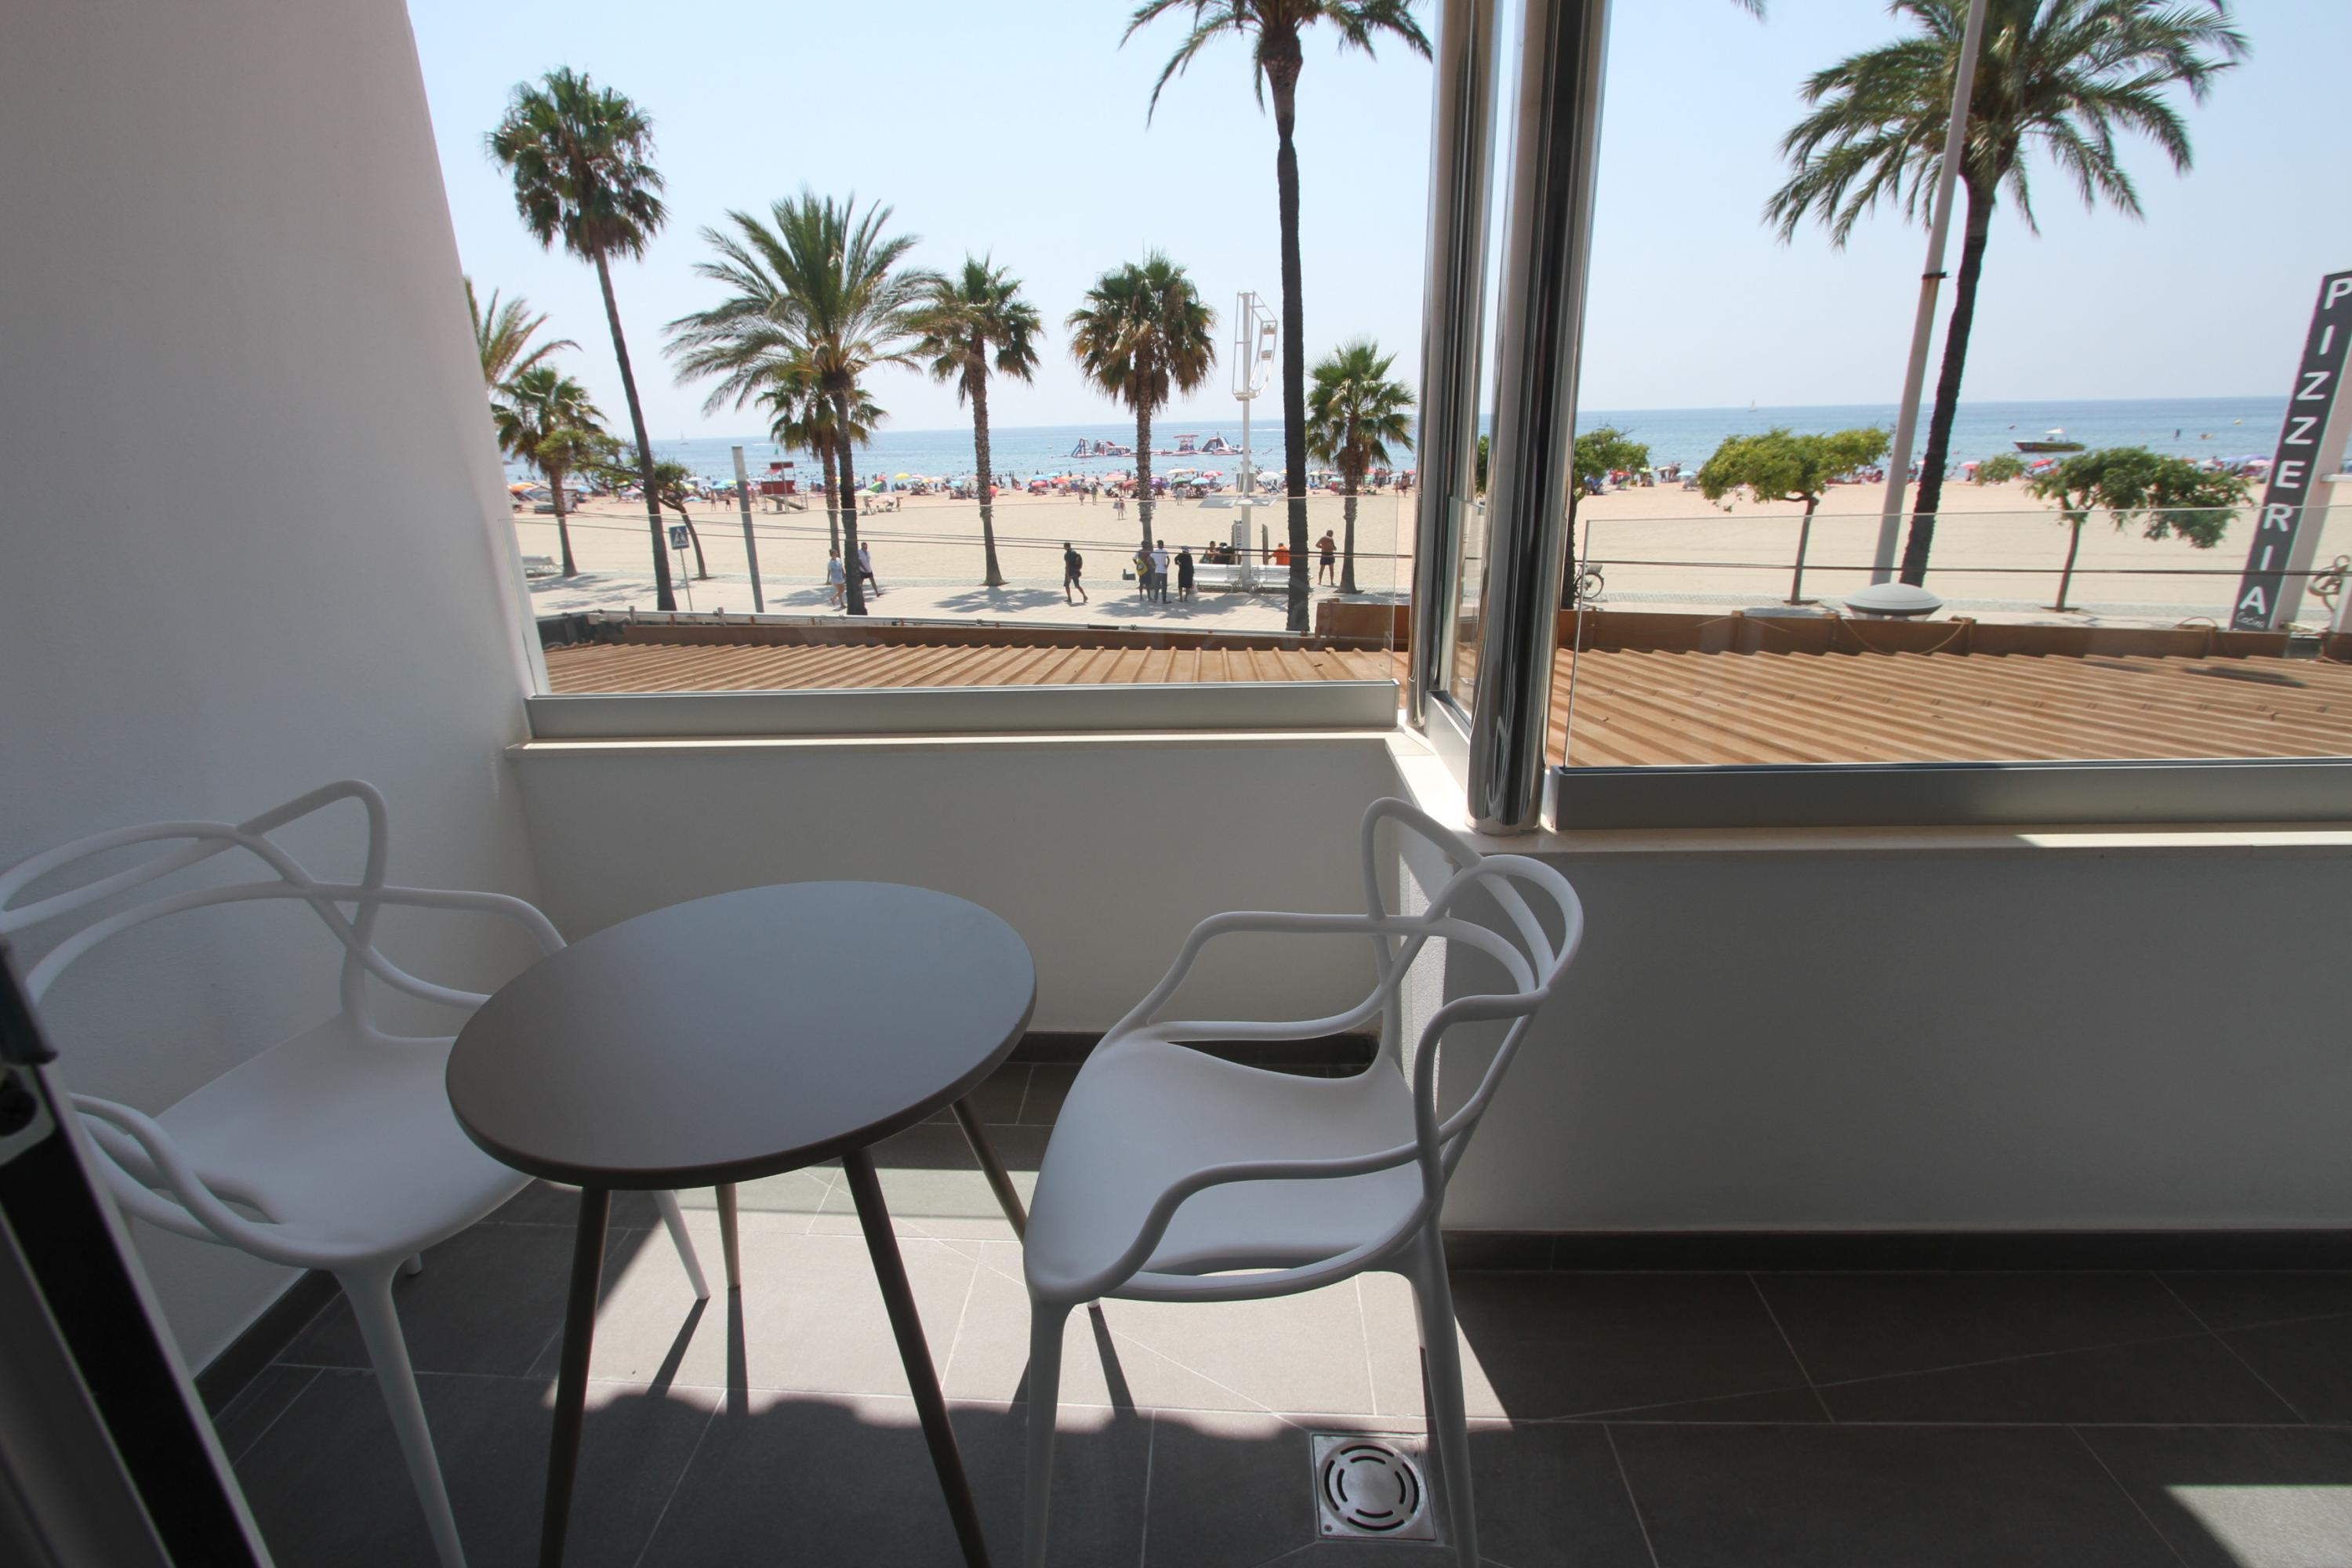 CBR-004 Roesmar 1H Seaview Apartment playa Cambrils